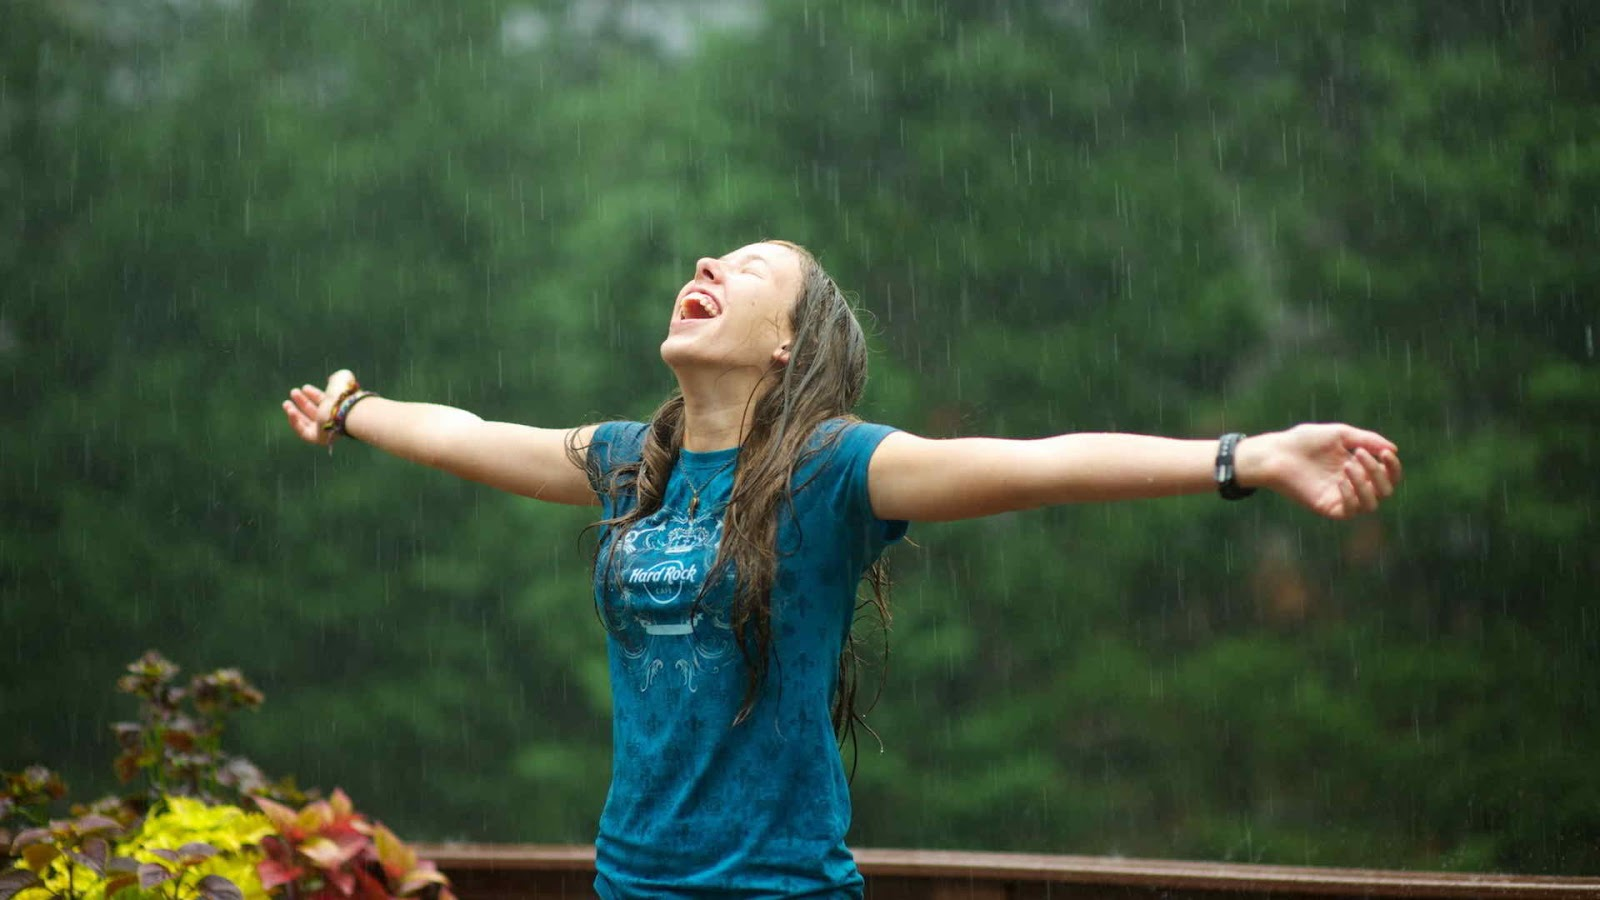 Alone But Happy Quotes Wallpapers Girl In Rain Profile Dp For Whatsapp And Facebook